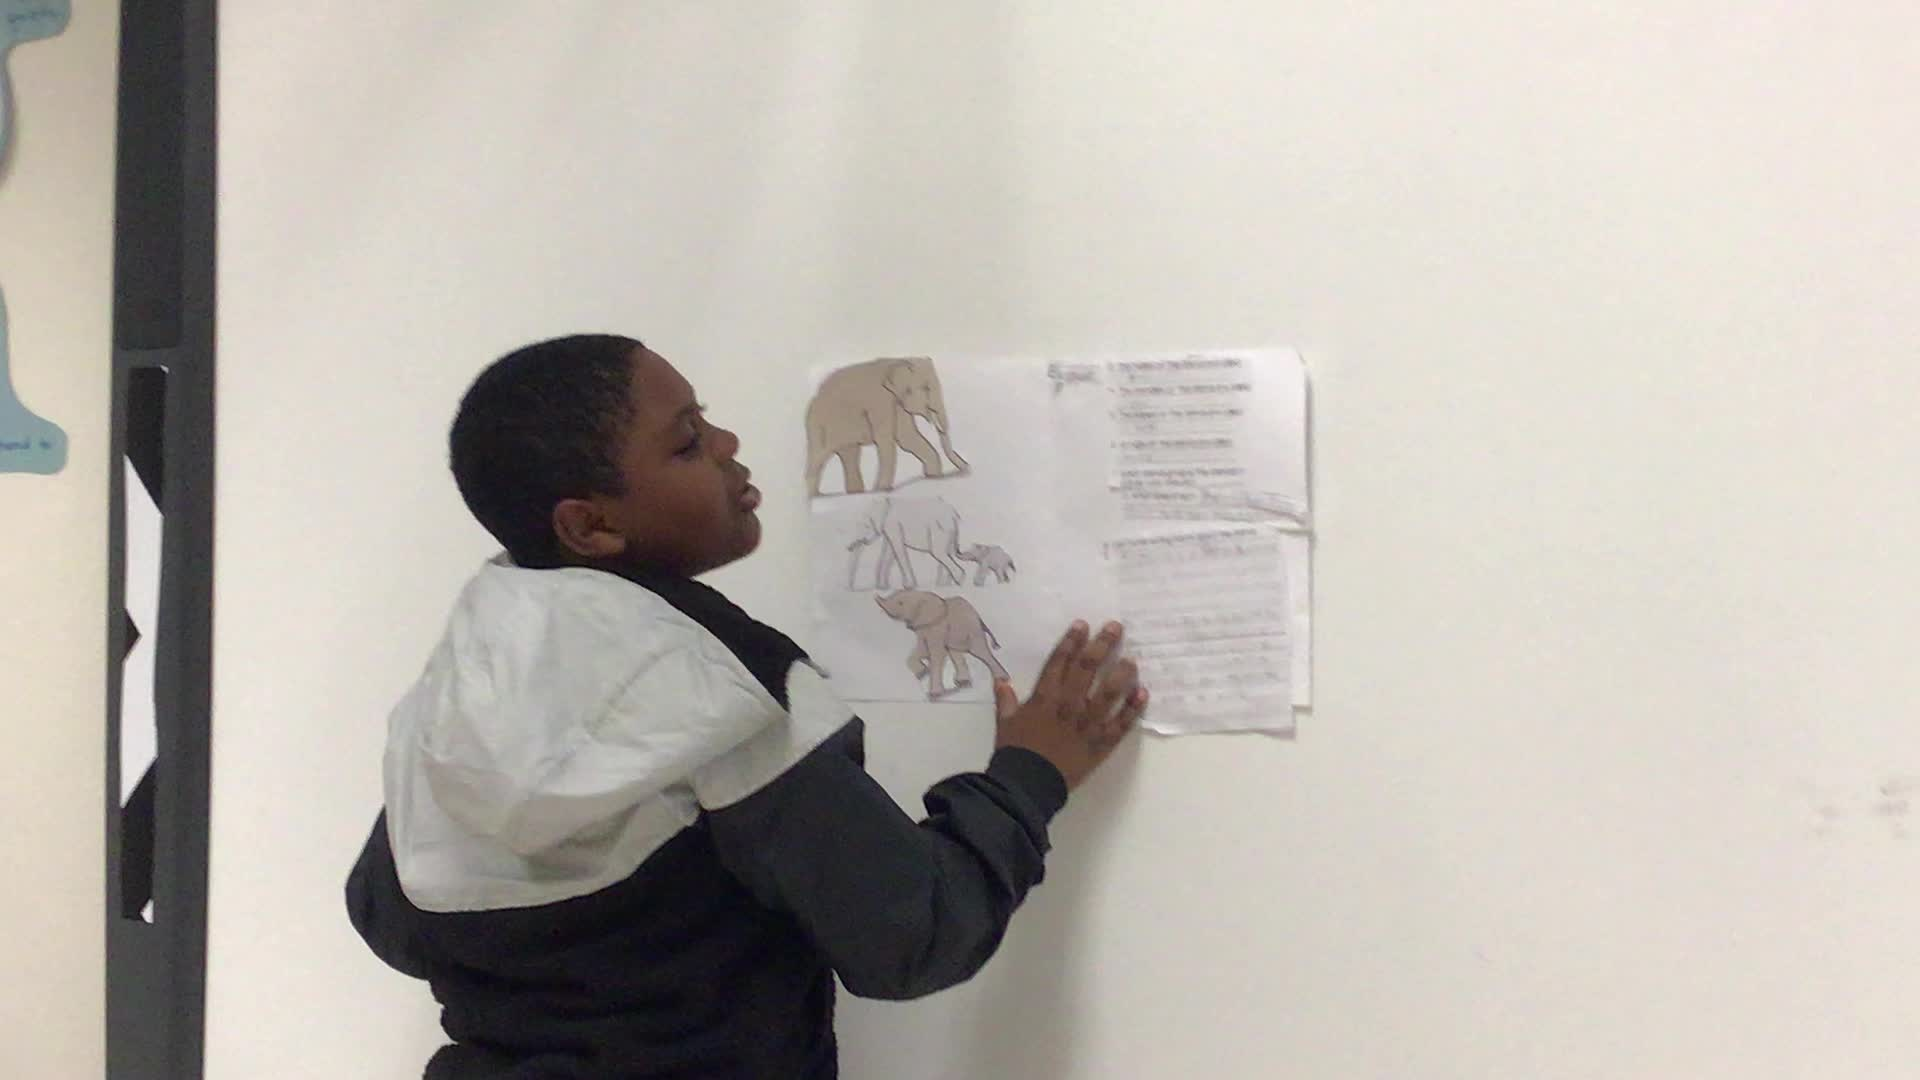 Elephant research presentation